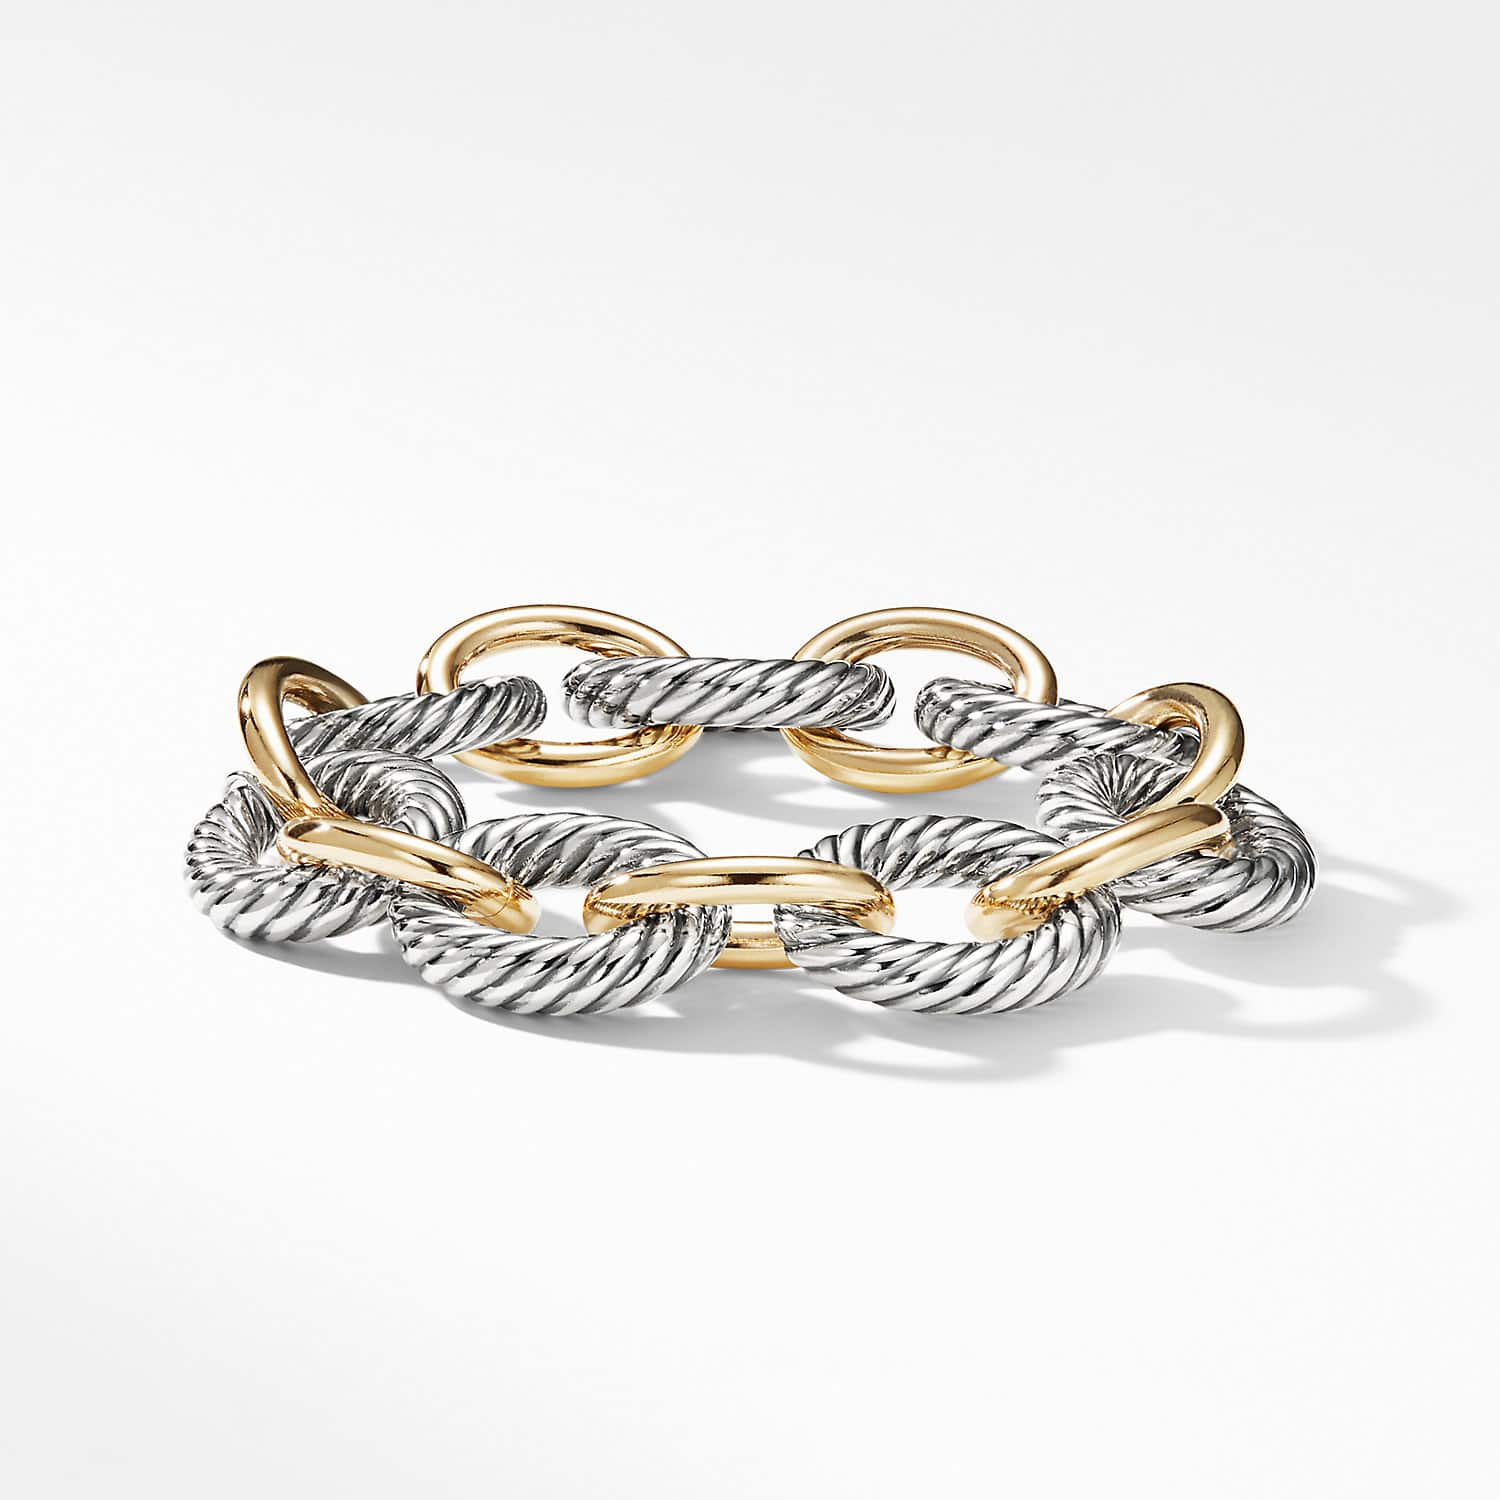 d5ee720b902 Extra-Large Oval Link Bracelet with 18K Gold Product Image